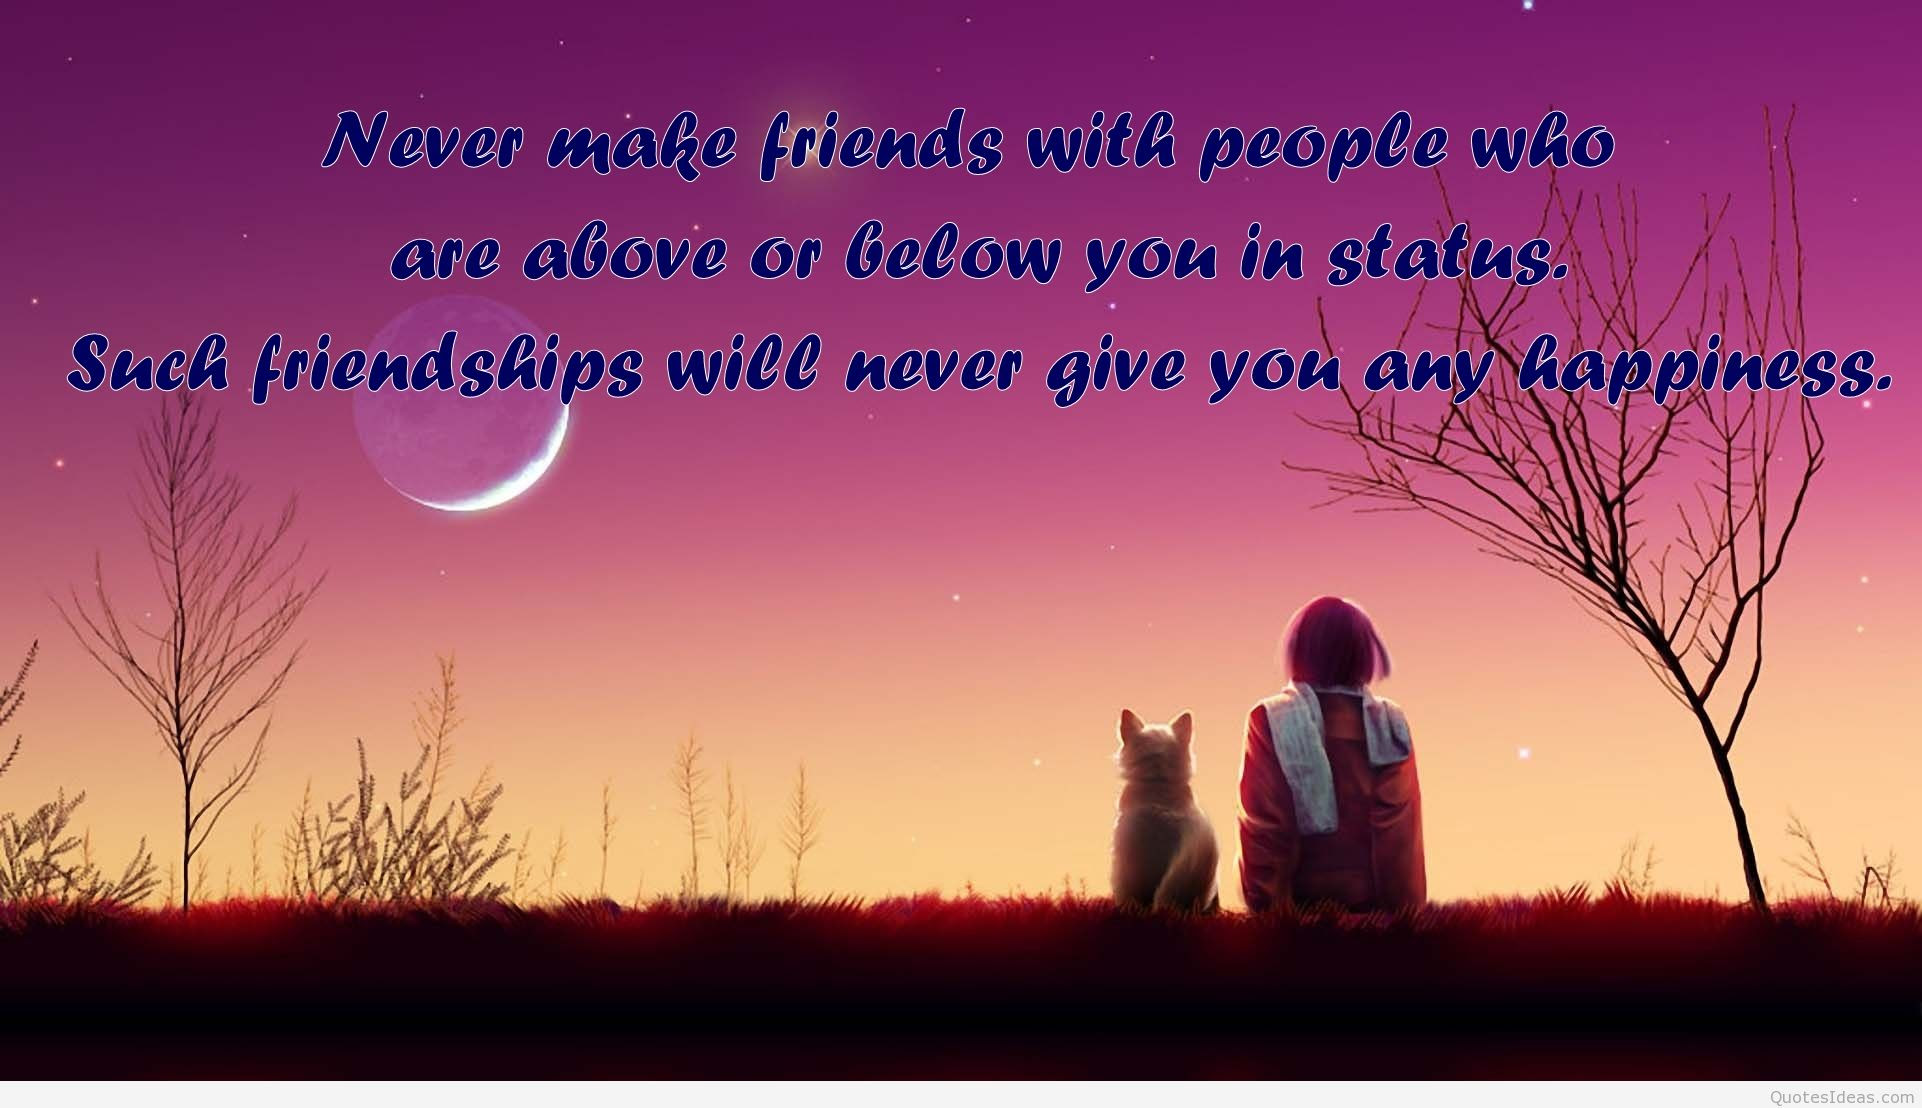 Cute Bff Computer Wallpapers Hd Best Friends Forever Backgrounds